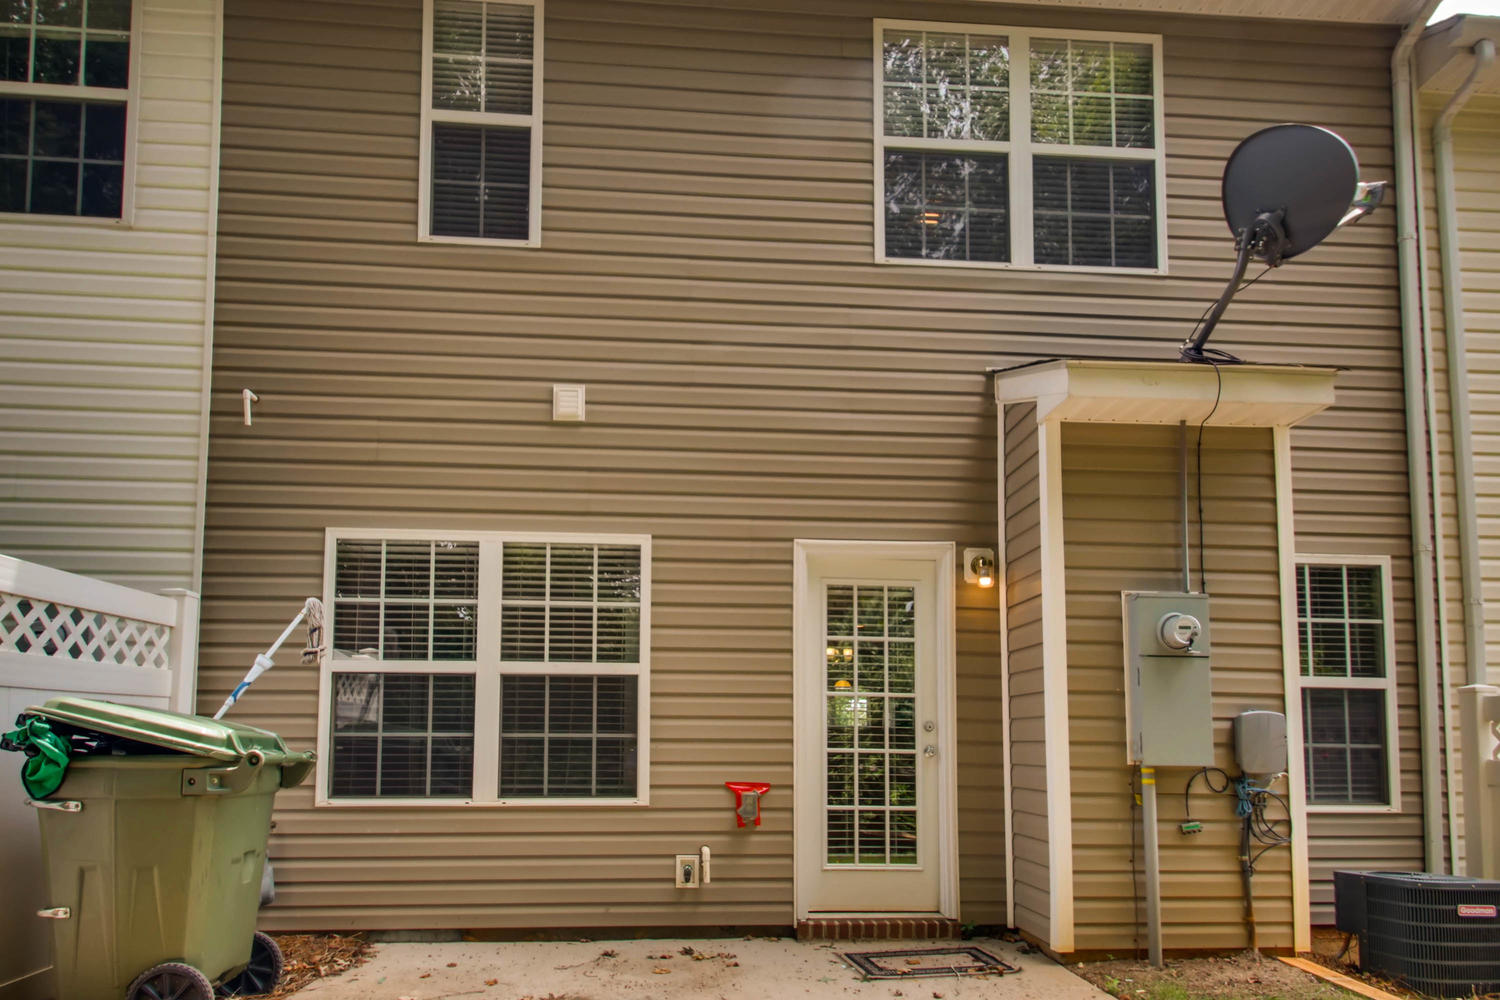 Photo of 505 Delta Dr, Fort Mill, SC, 29715